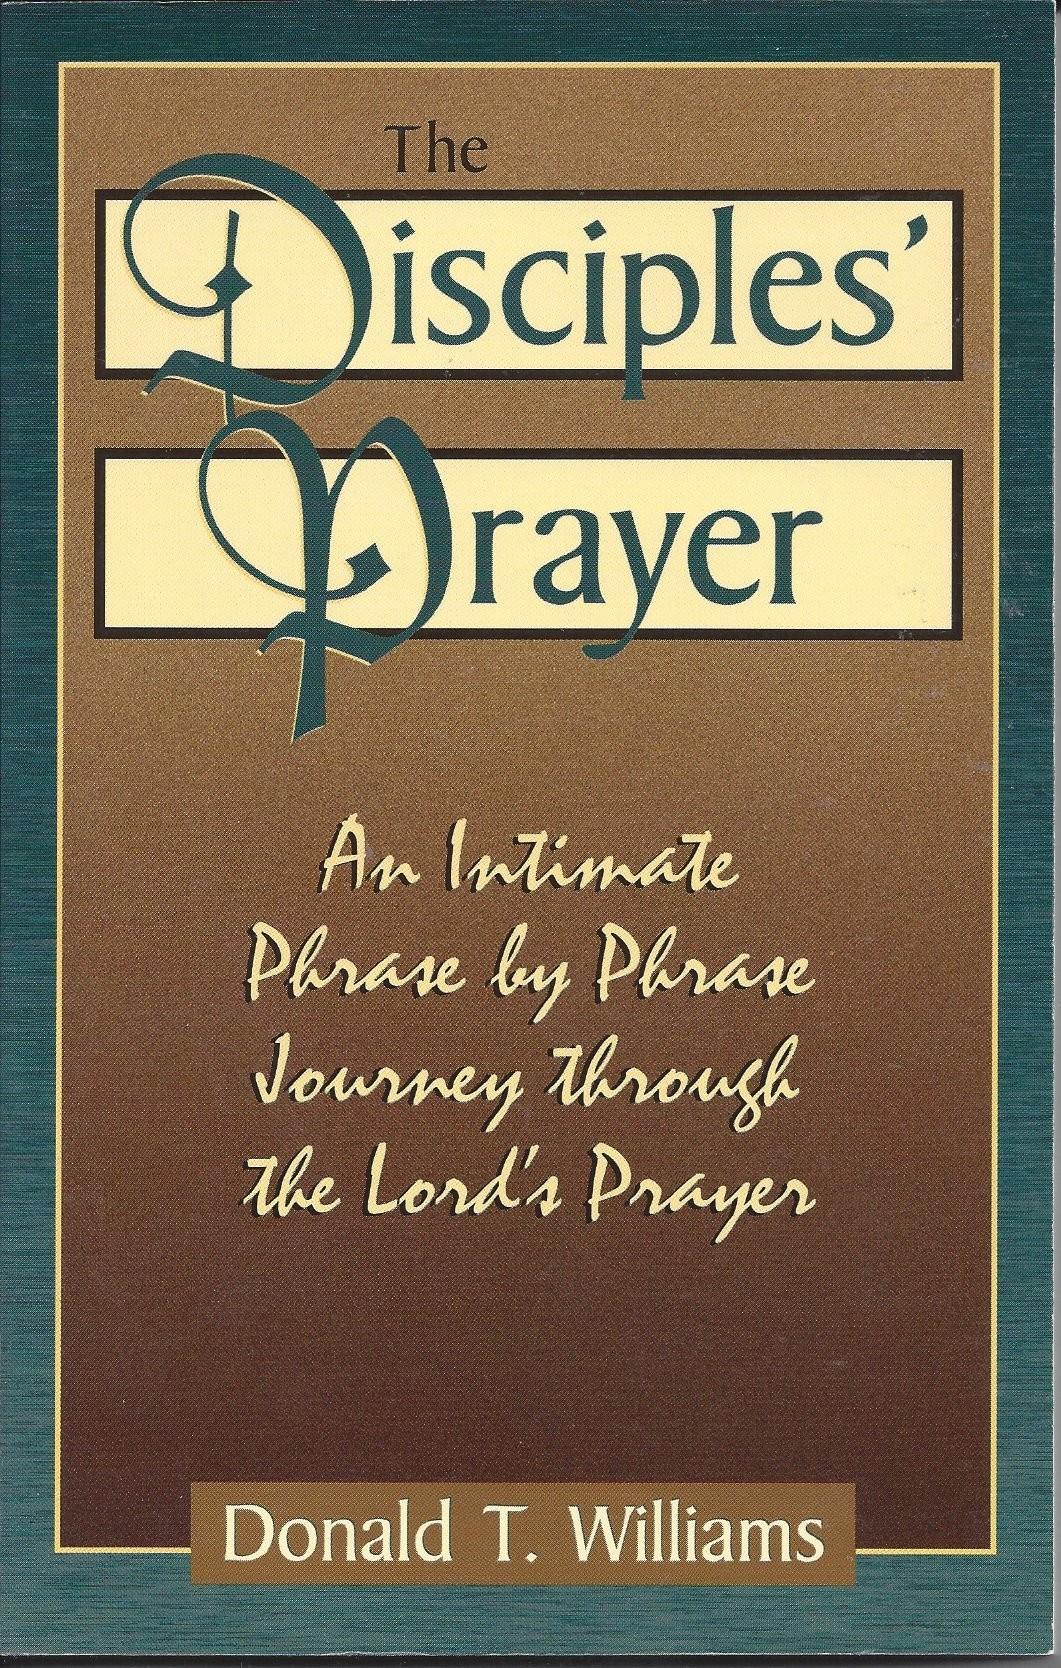 The Disciples Prayer